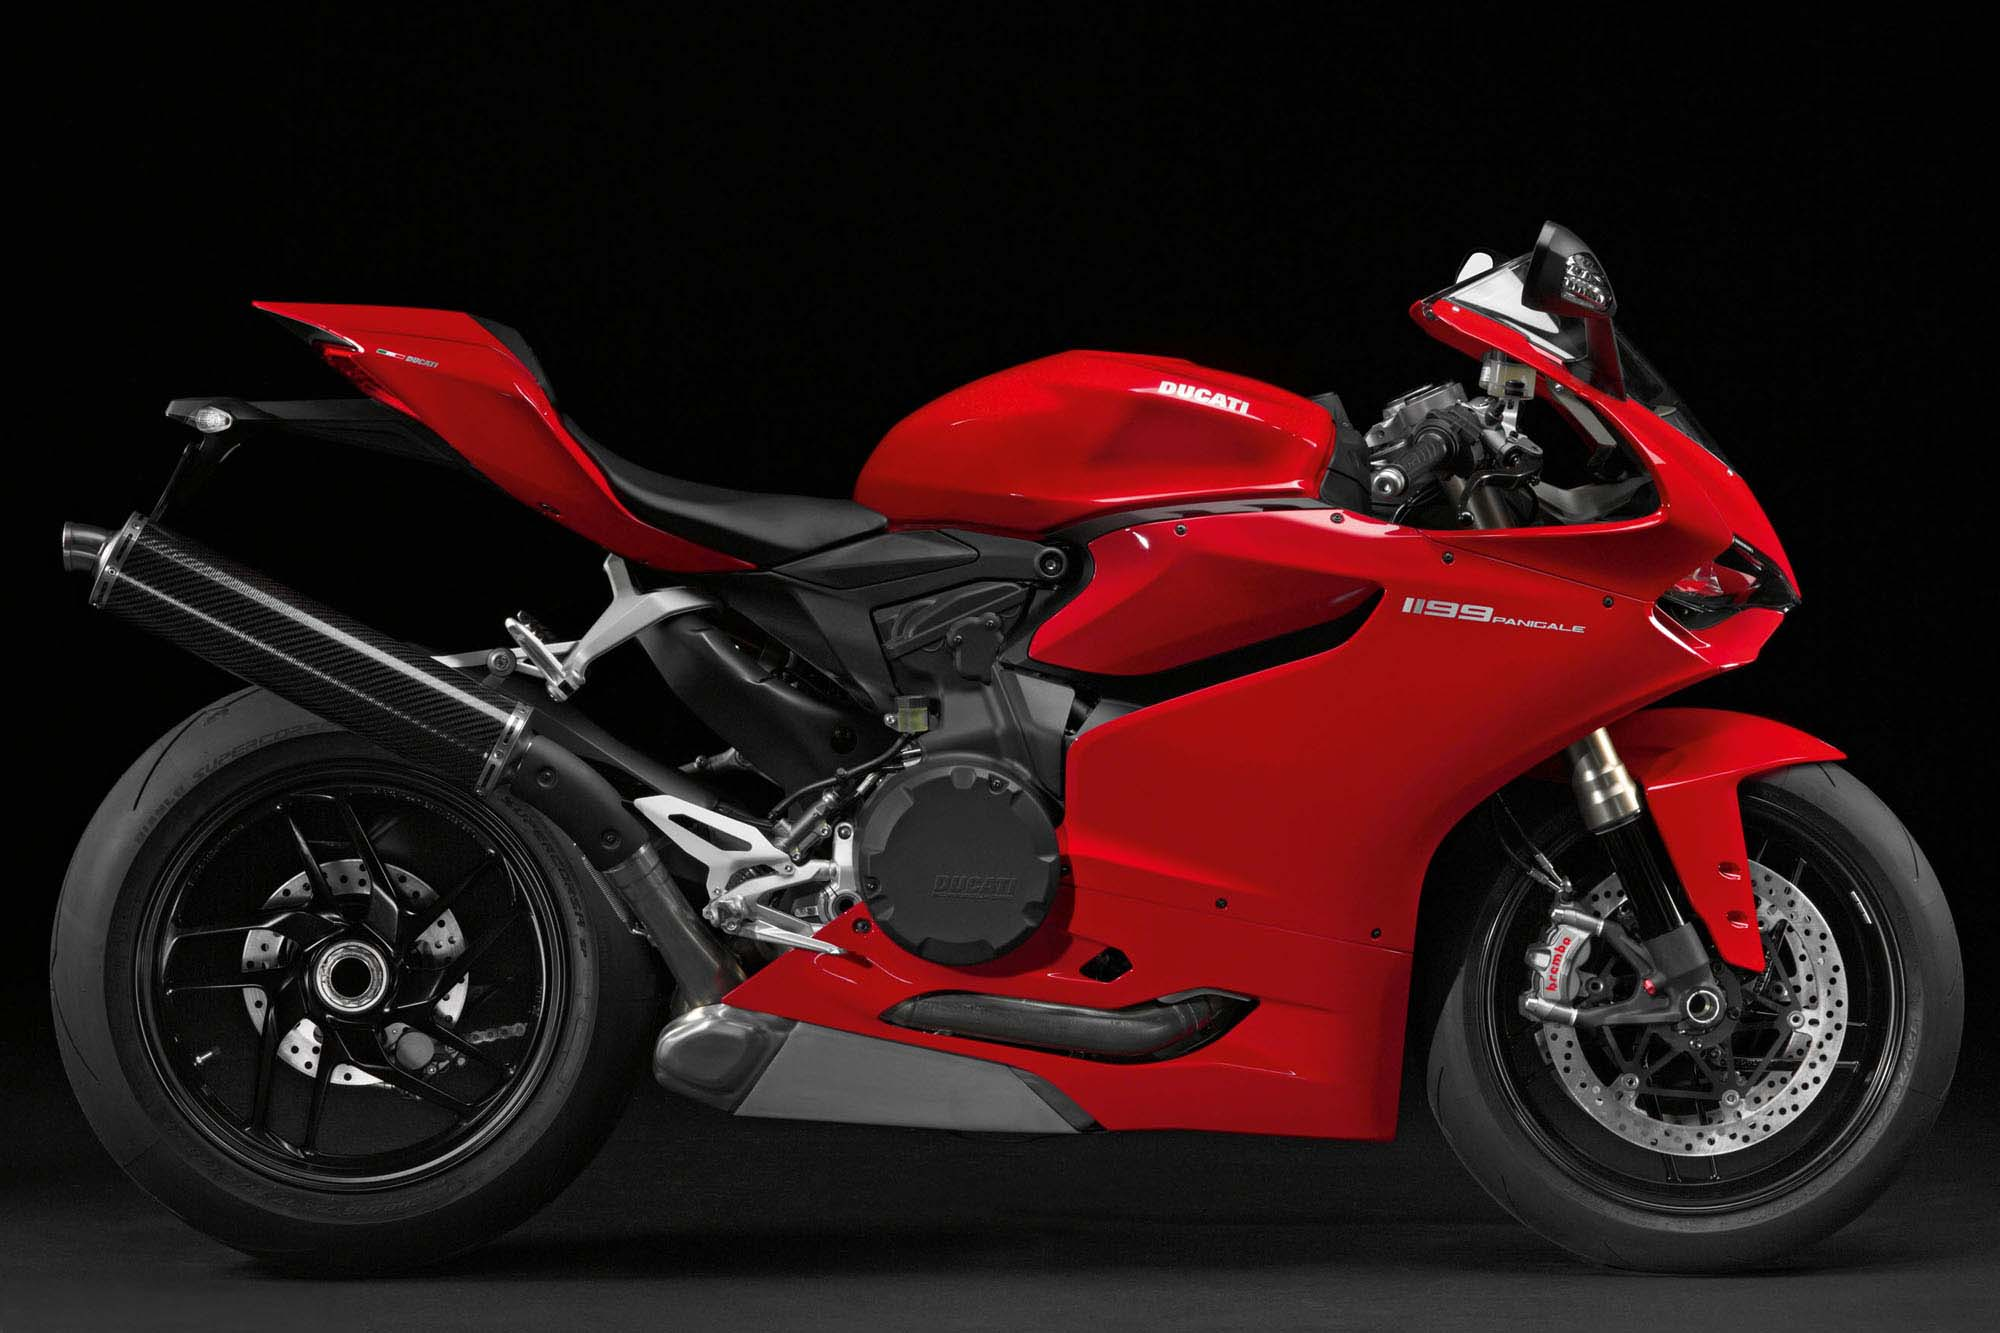 too loud for japan - the ducati 1199 panigale gets ruined for the